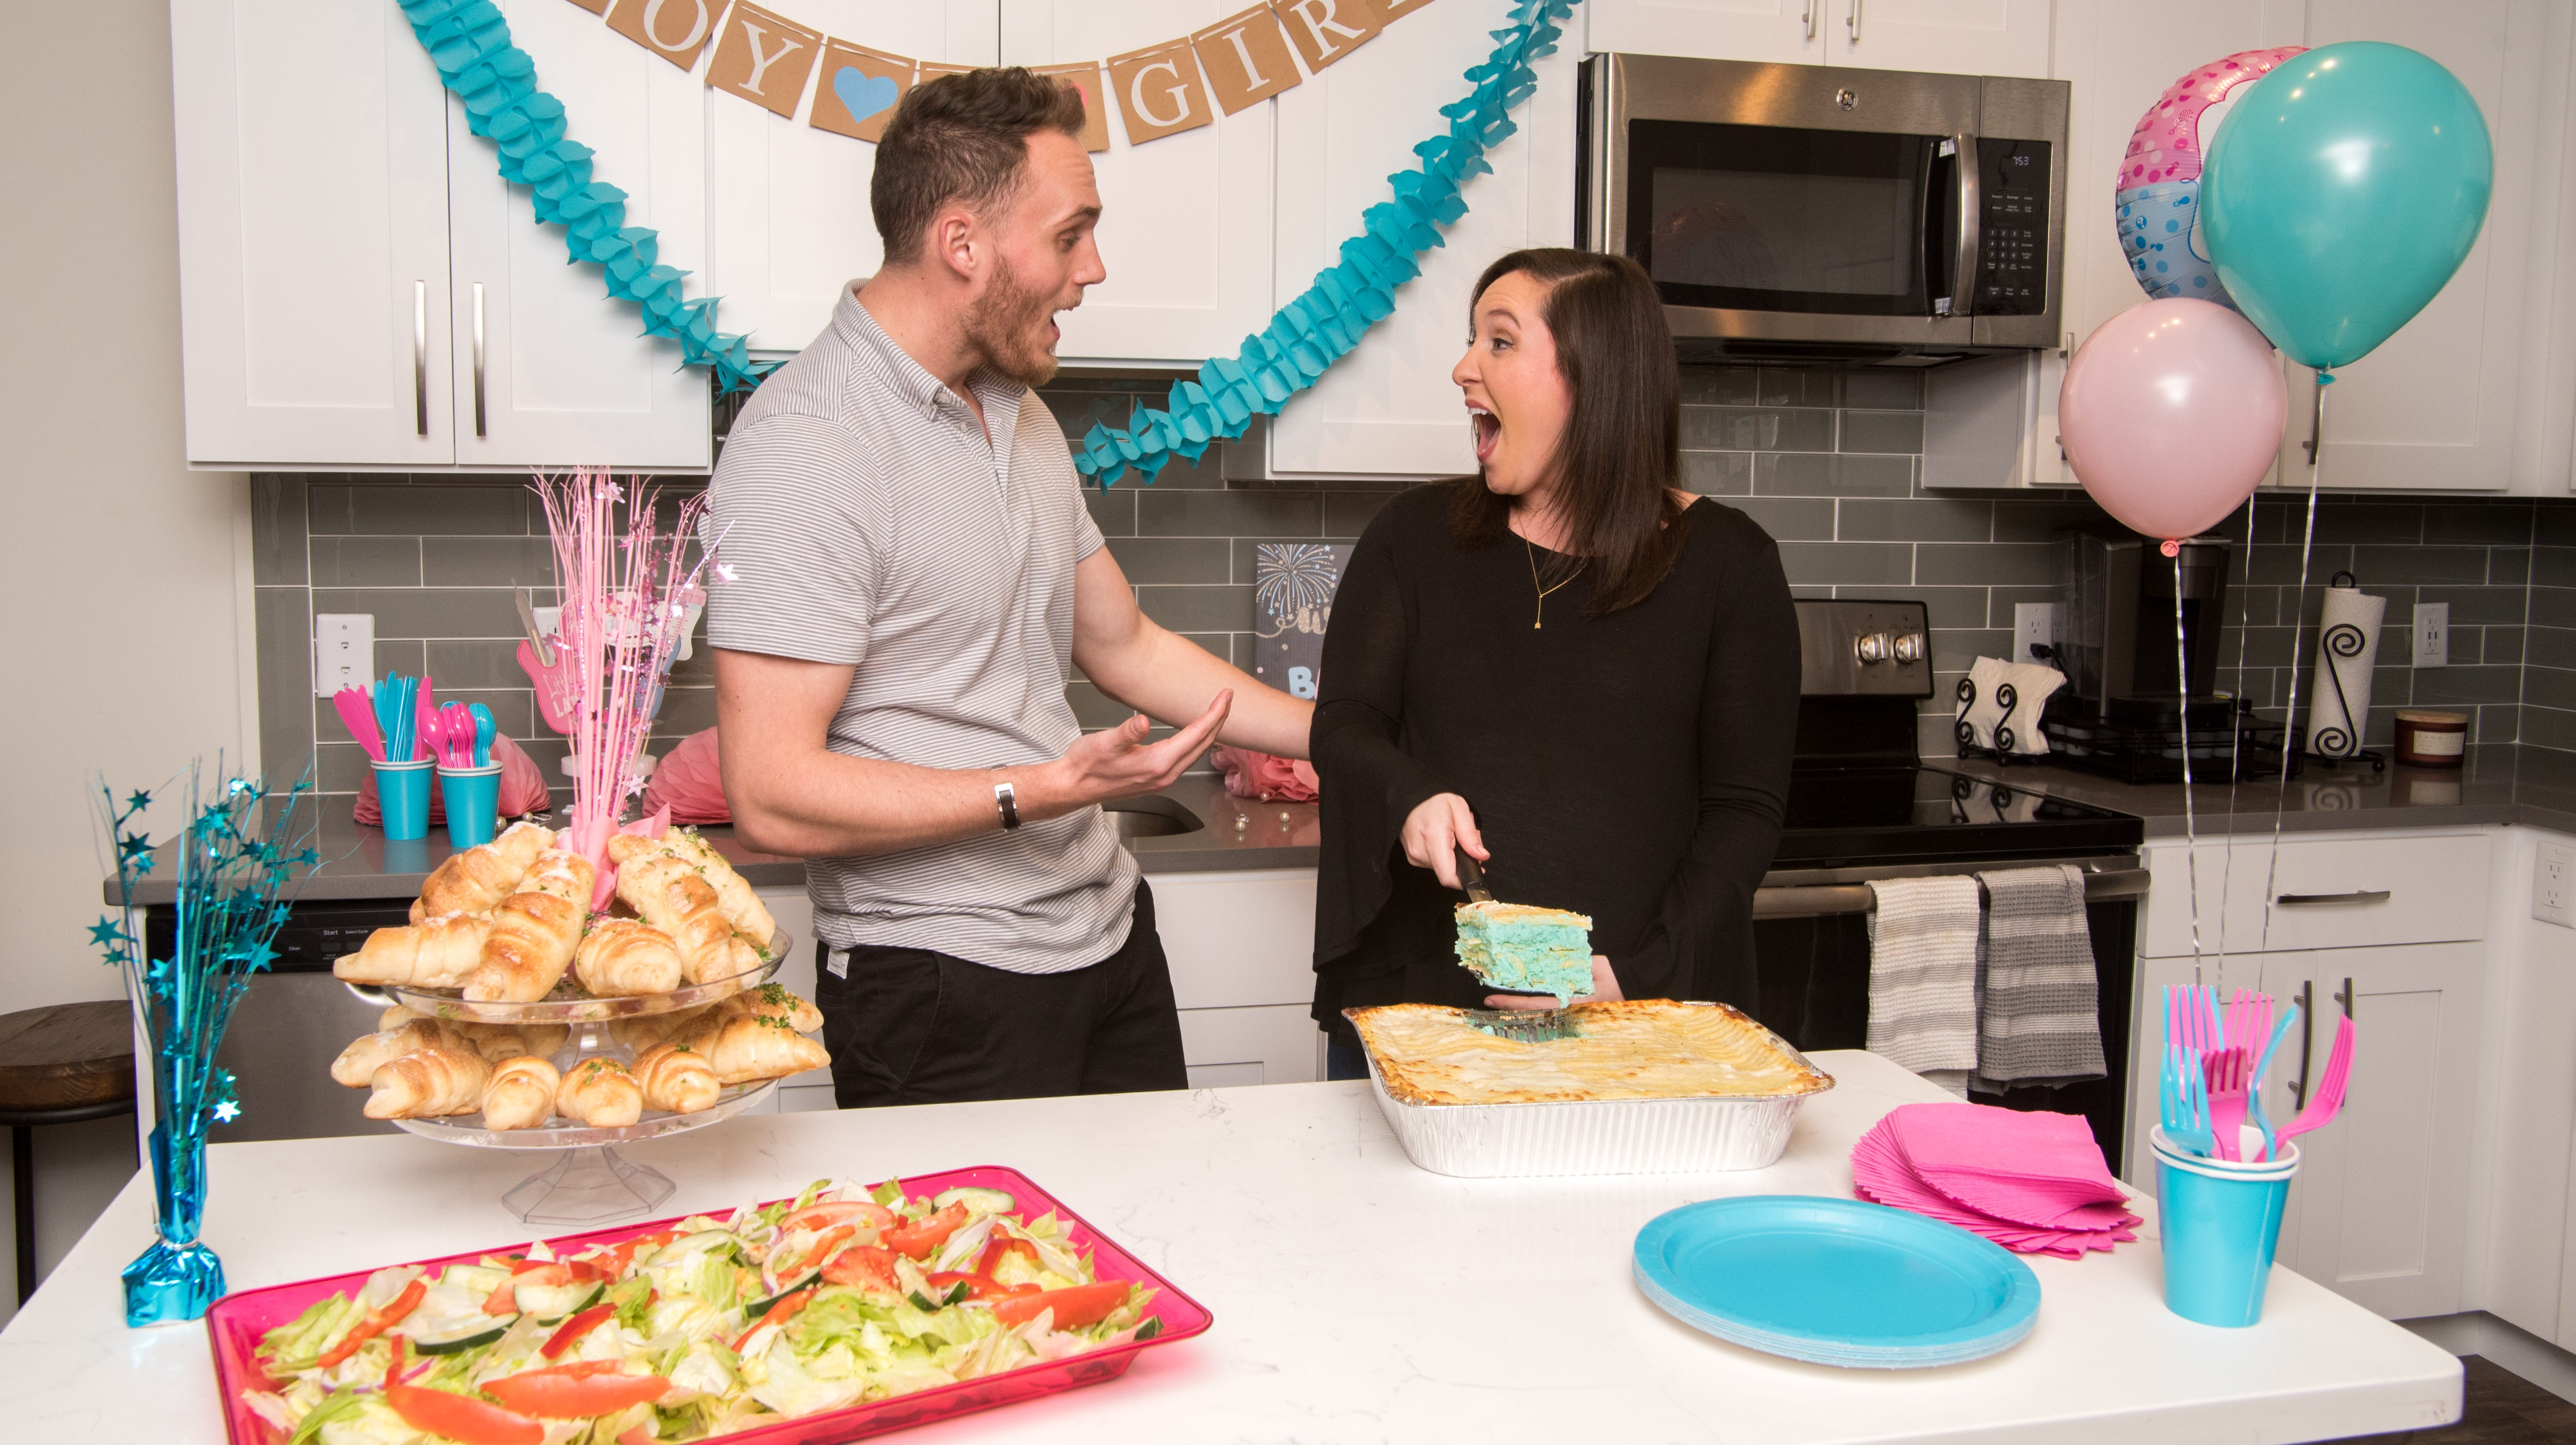 Forget blue or pink cakes, now expecting parents can get gender-reveal lasagna